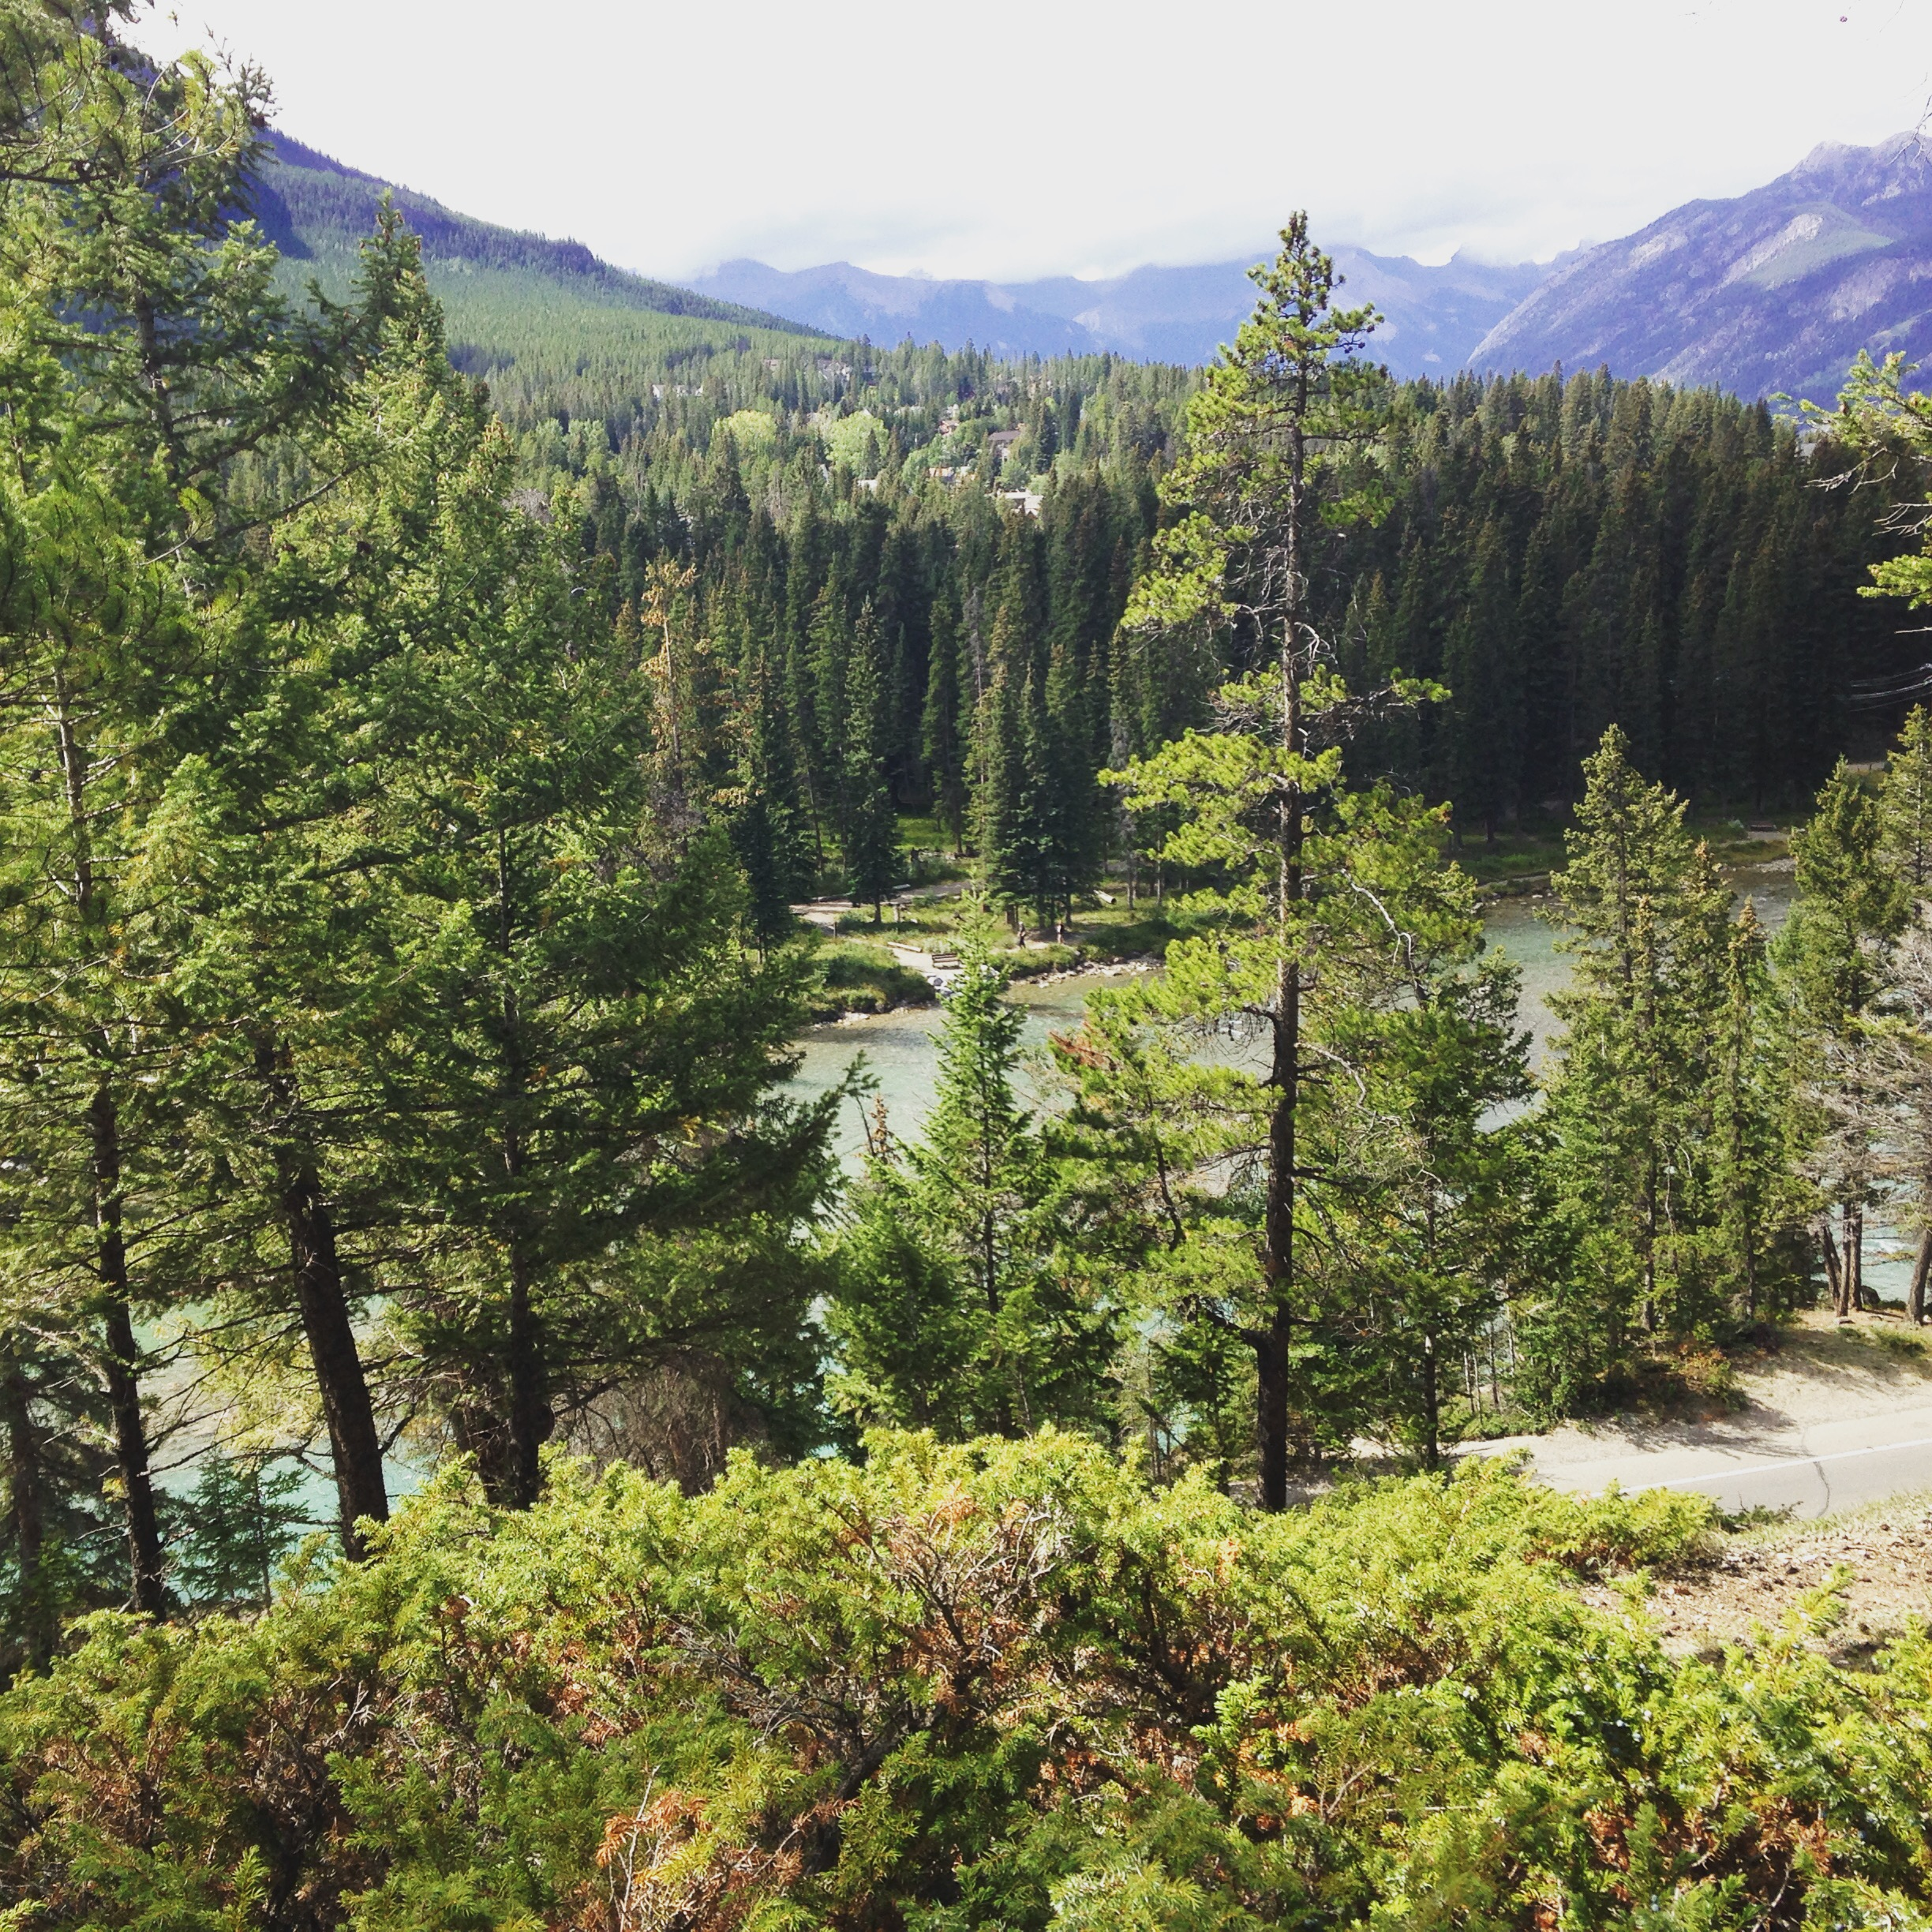 (Above)Taken by the author during the Peter Lougheed Leadership College Orientation in Banff, August 2015.